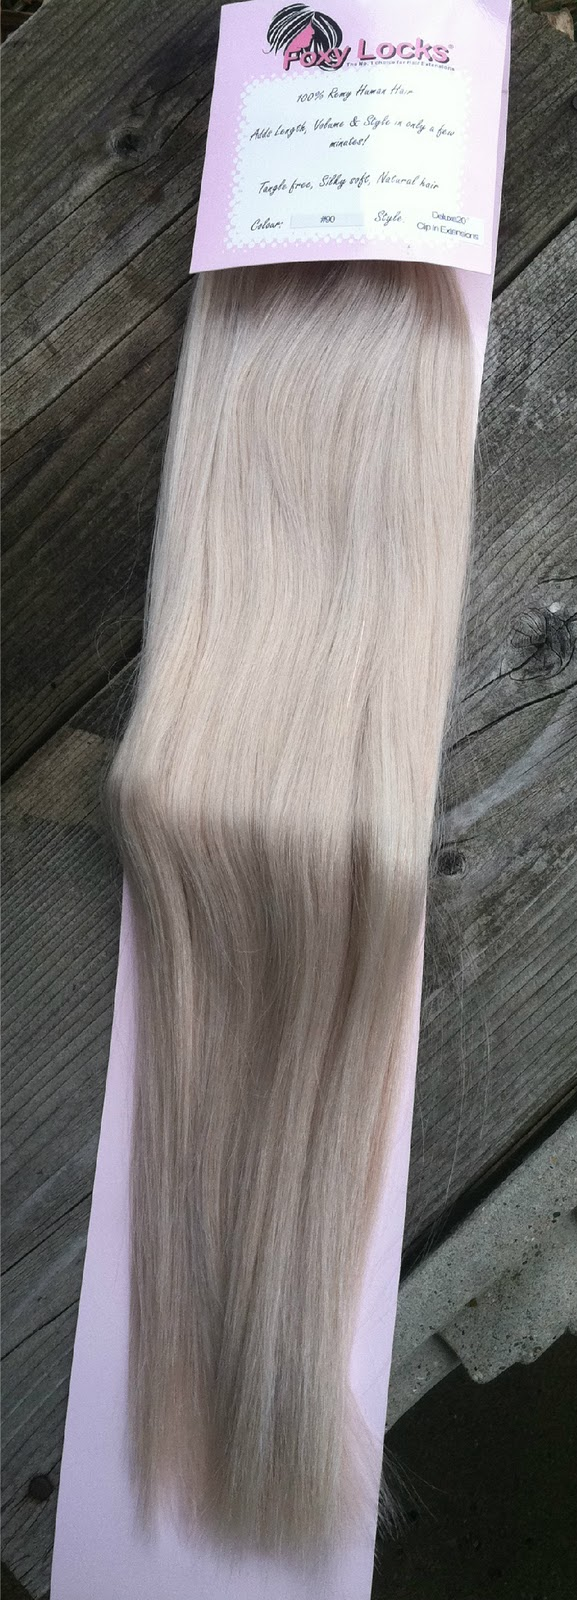 Sally Hair Extension Images Hair Extensions For Short Hair